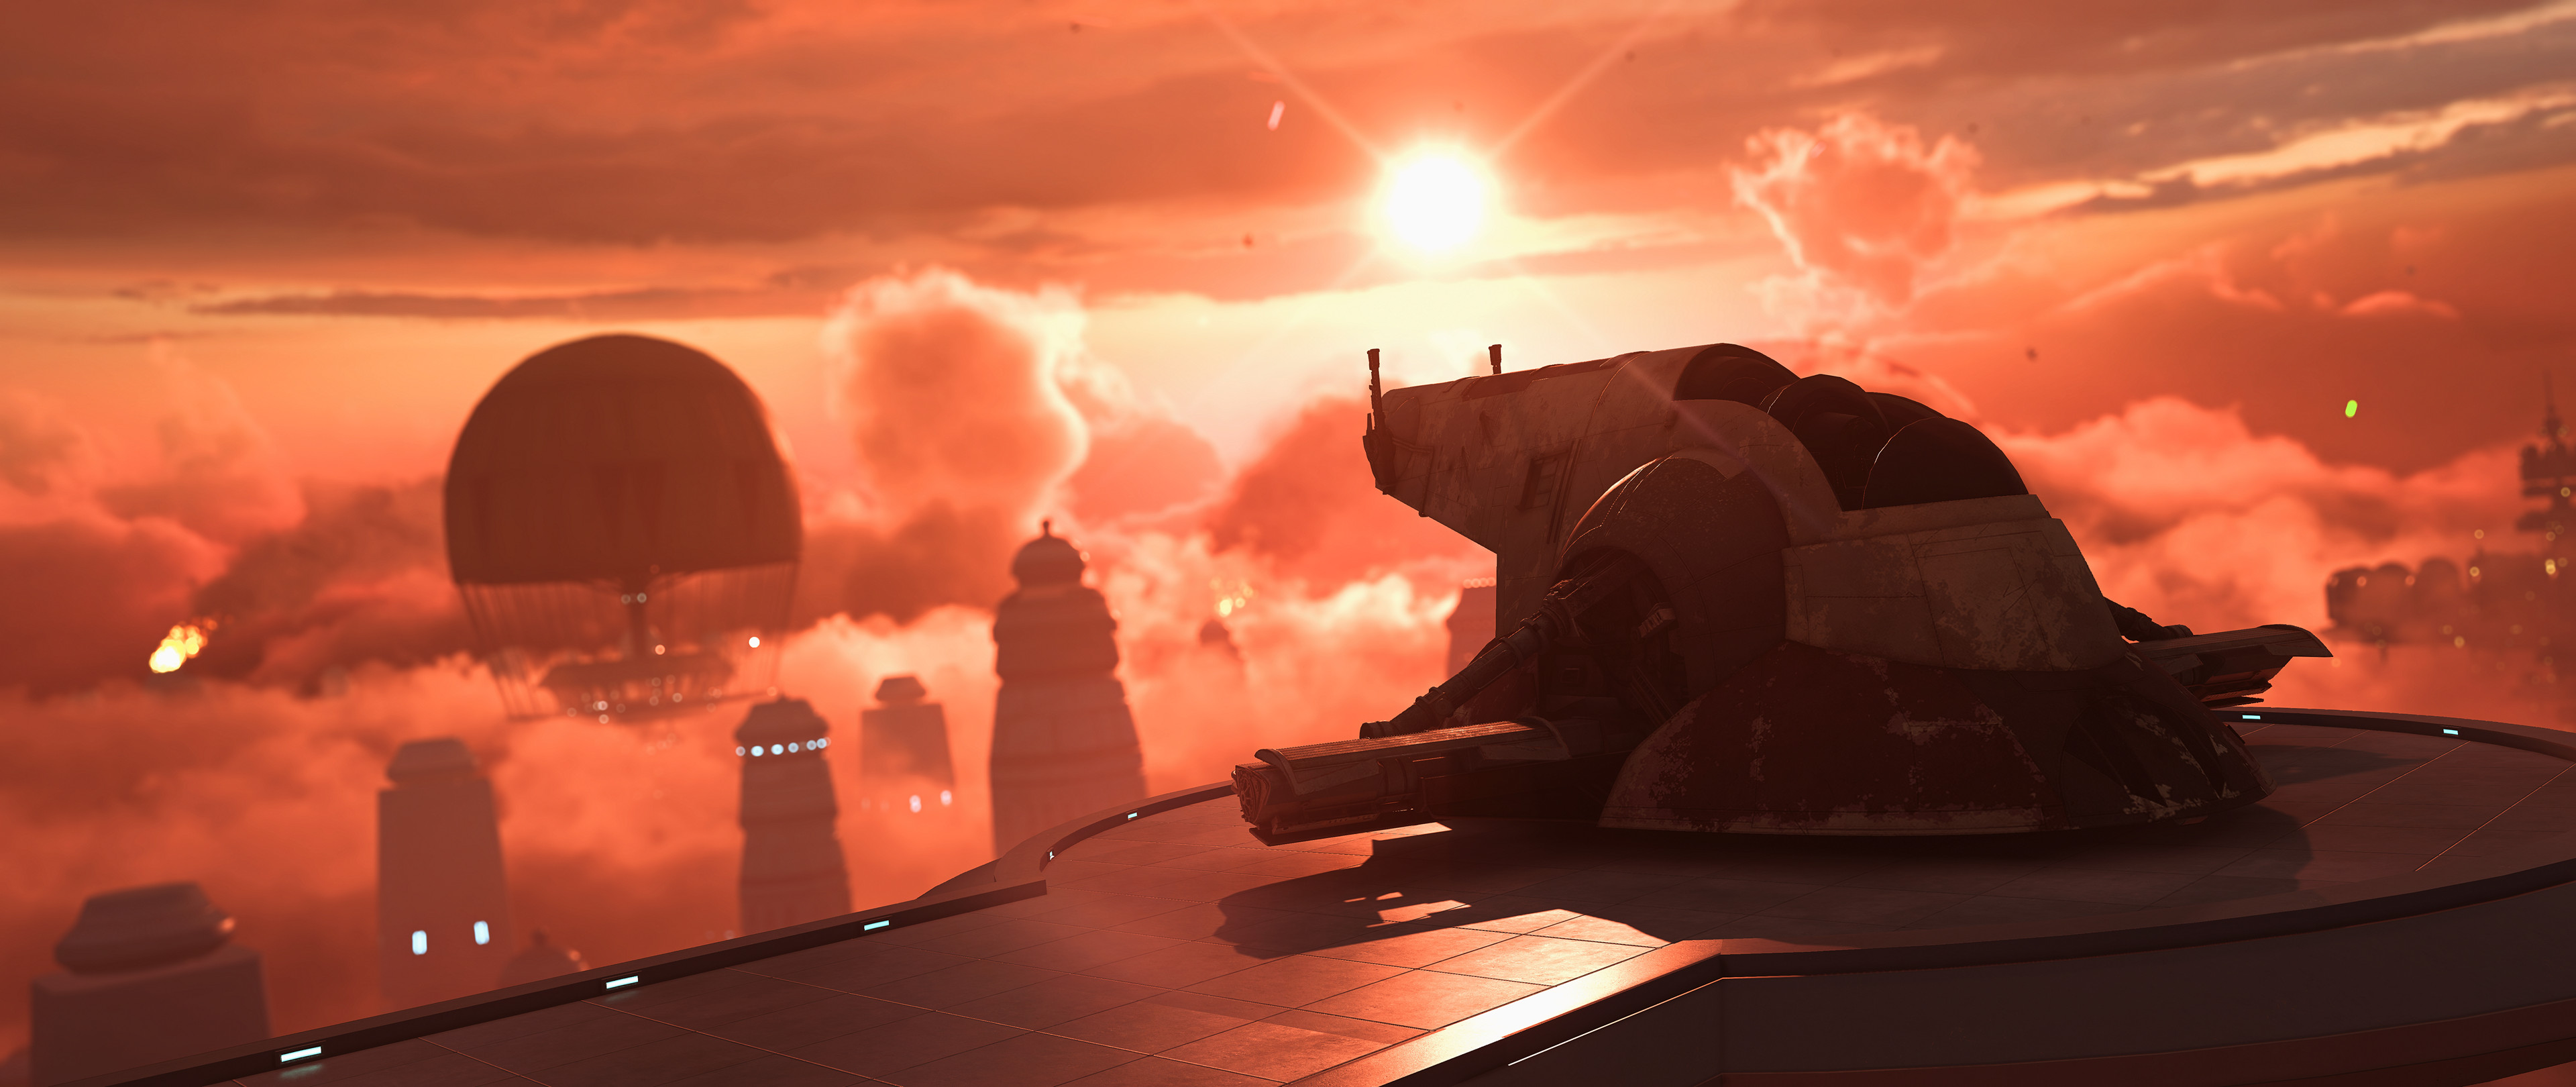 Killzone Shadow Fall Full Hd Wallpaper Star Wars Battlefront 2015 Wallpapers Pictures Images